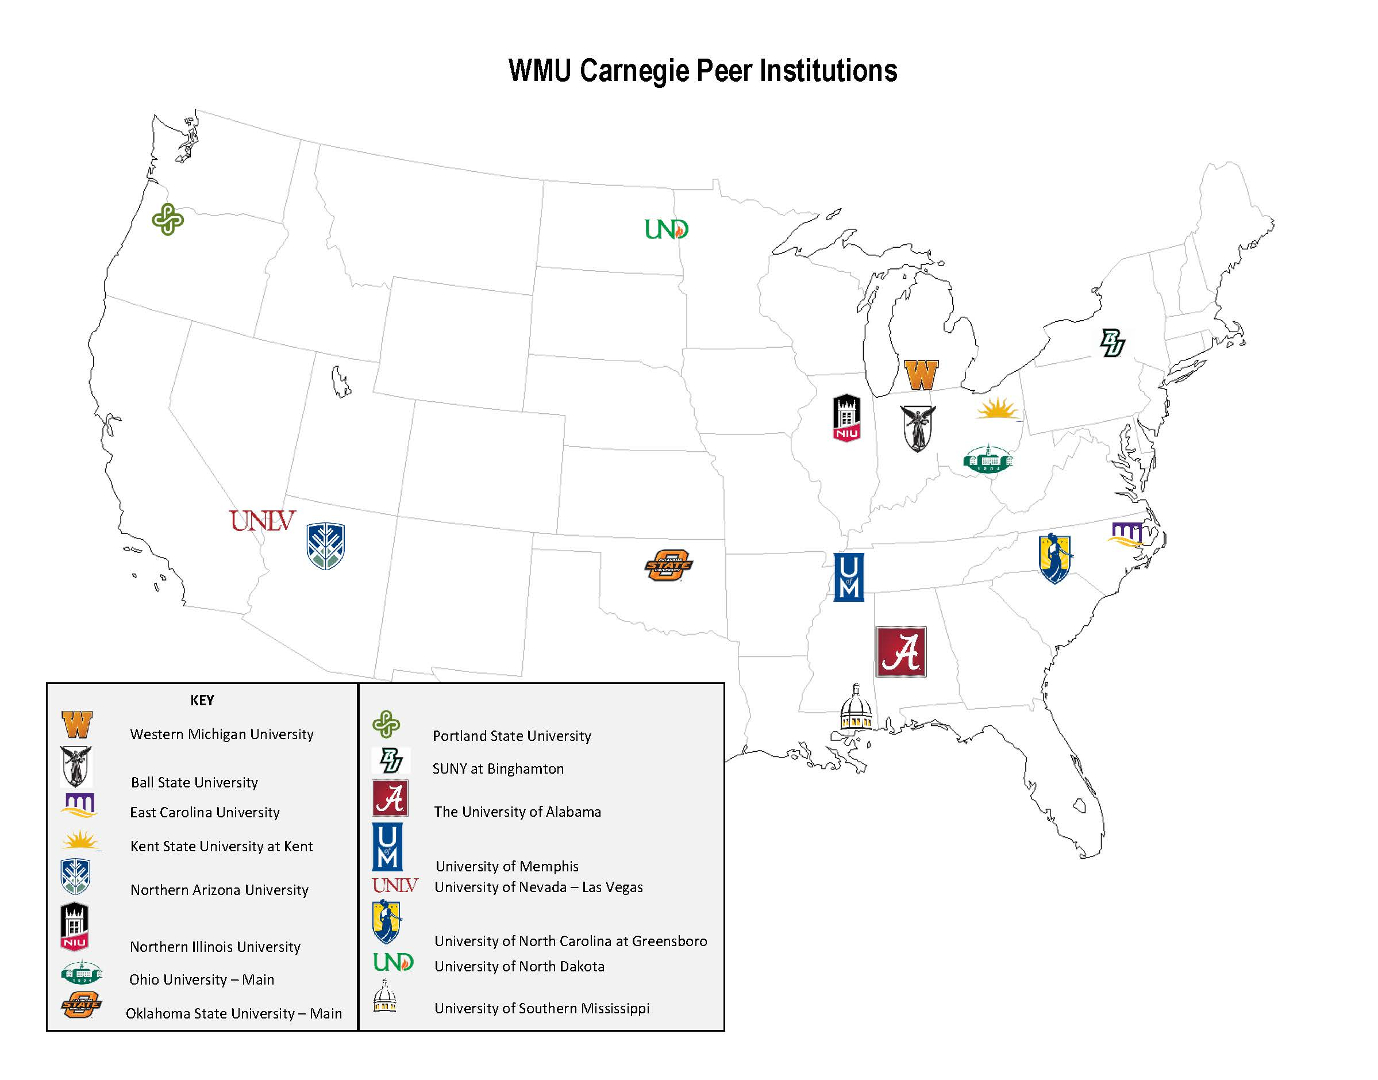 Map of WMU's Carnegie peer institutions